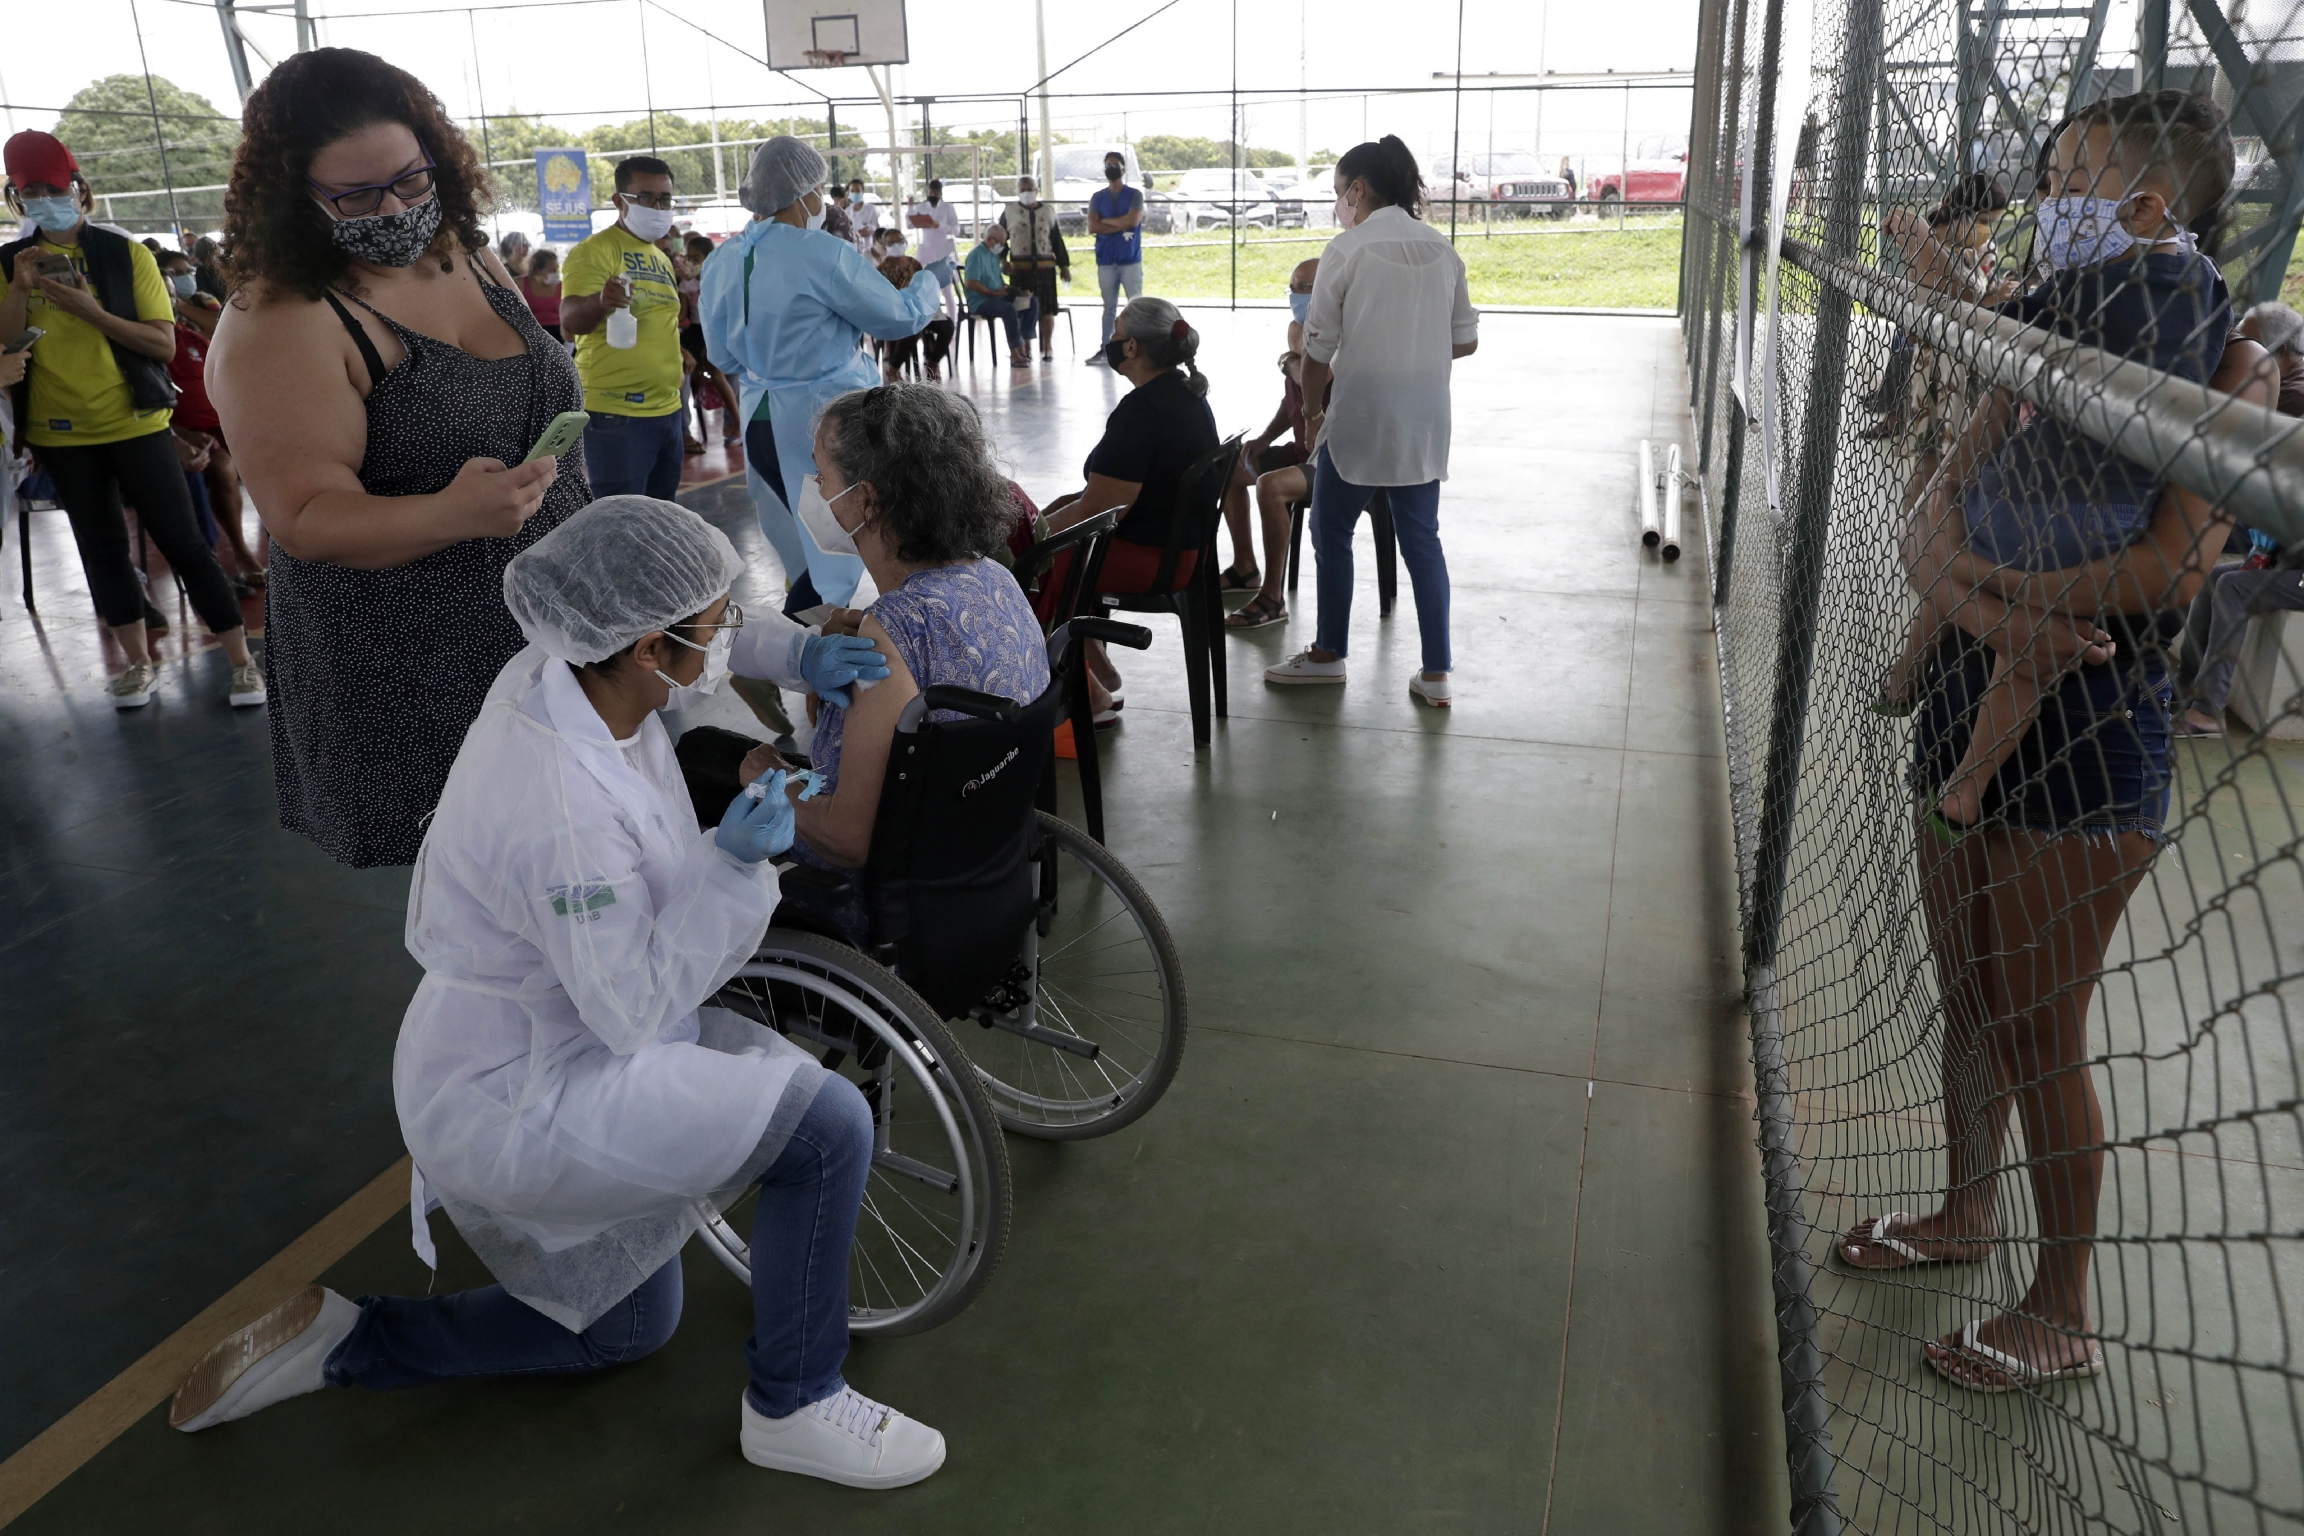 A health worker inoculates a woman at a COVID-19 vaccination point for priority elderly persons in the Ceilandia neighborhood, on the outskirts of Brasilia, Brazil, March 22, 2021.